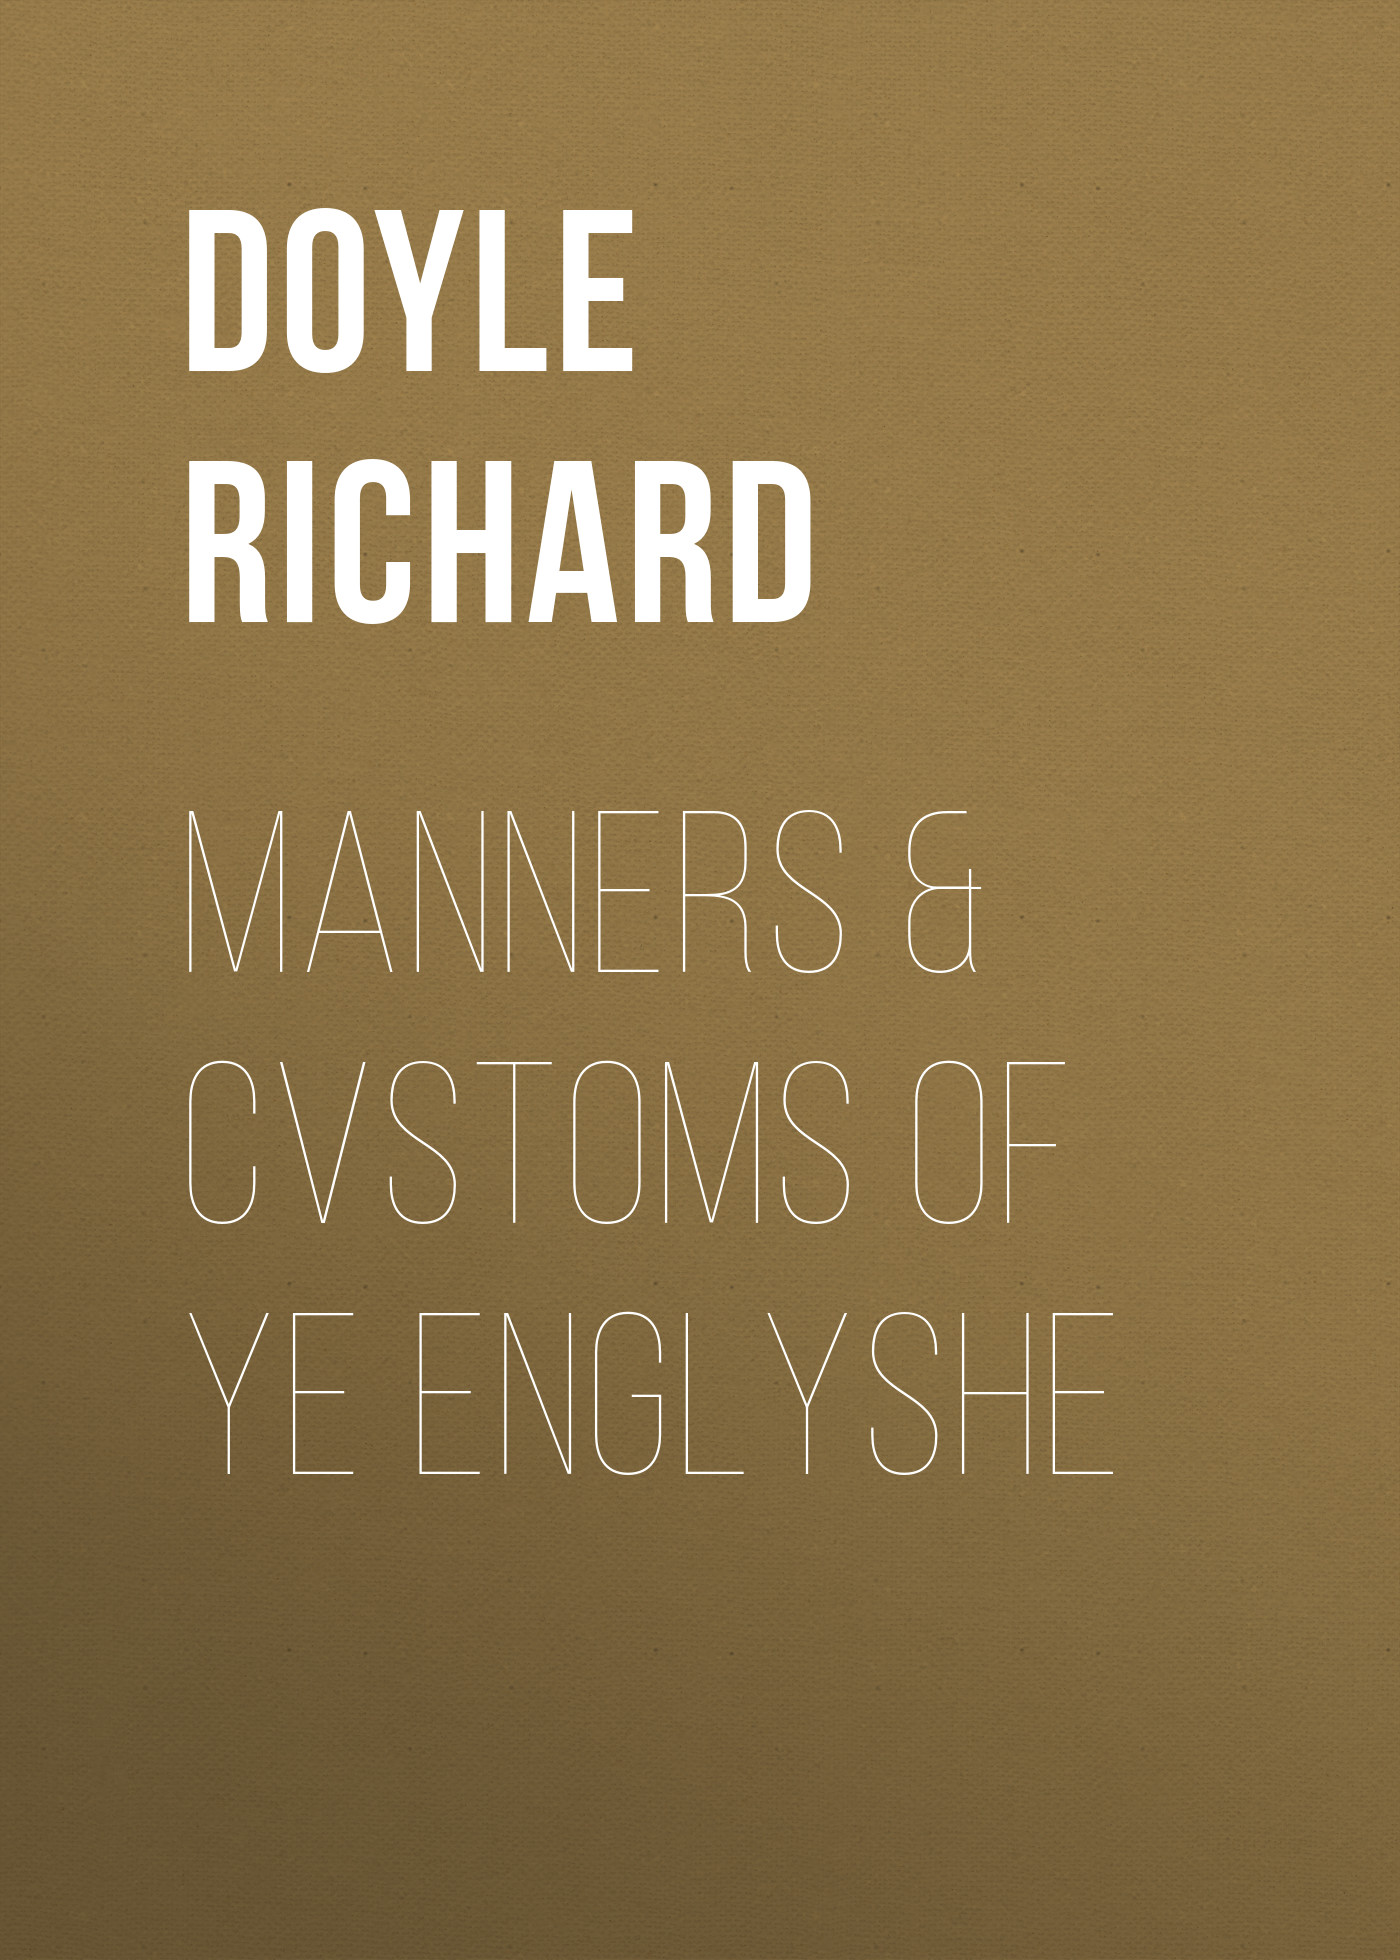 Doyle Richard Manners & Cvstoms of ye Englyshe цены